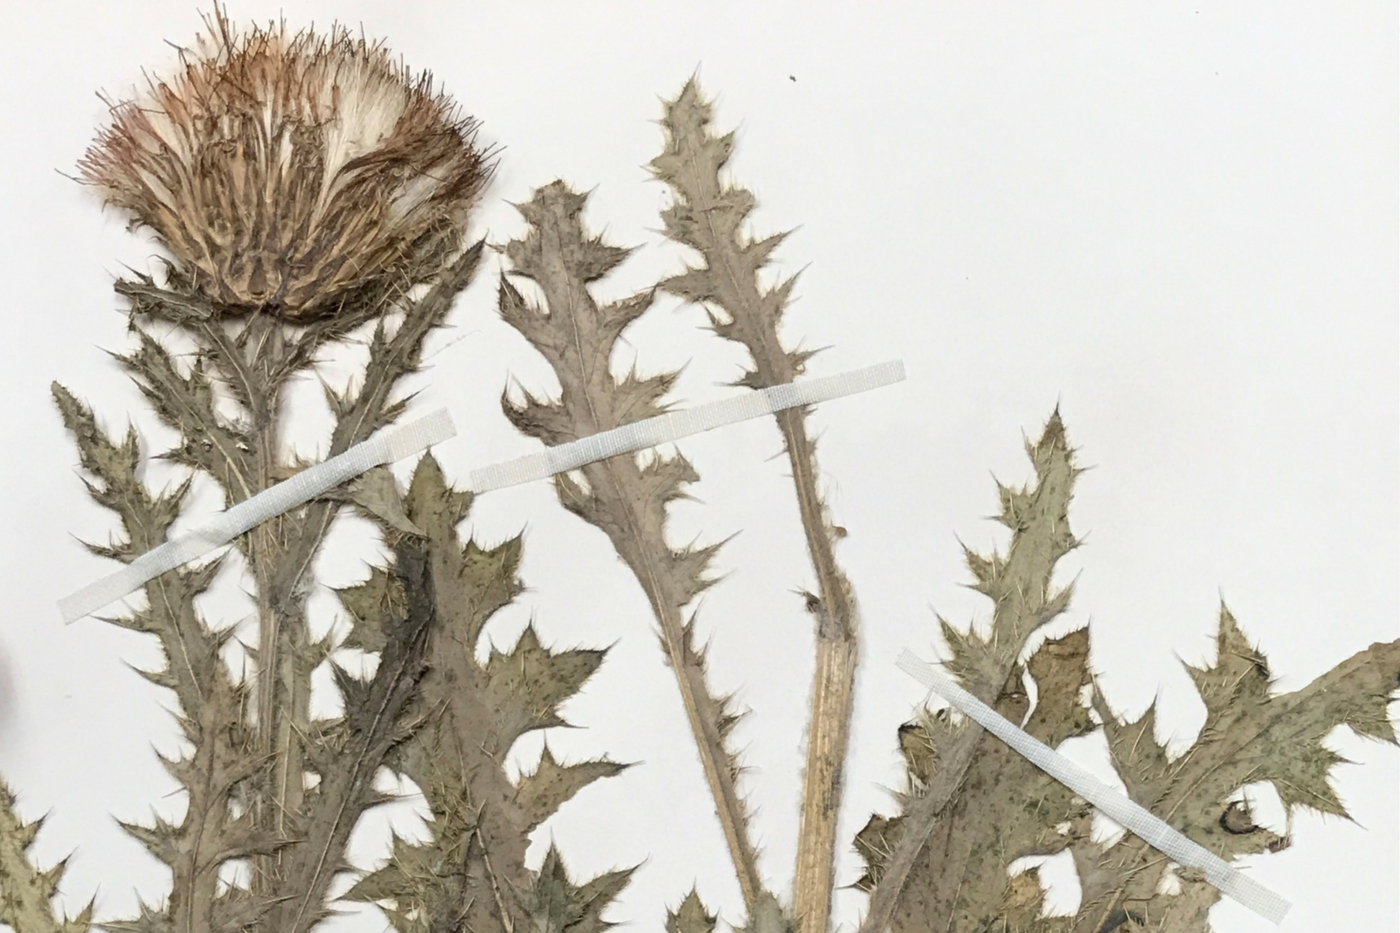 Dried plant specimen attached to paper, and a handwritten specimen label identifying the plant